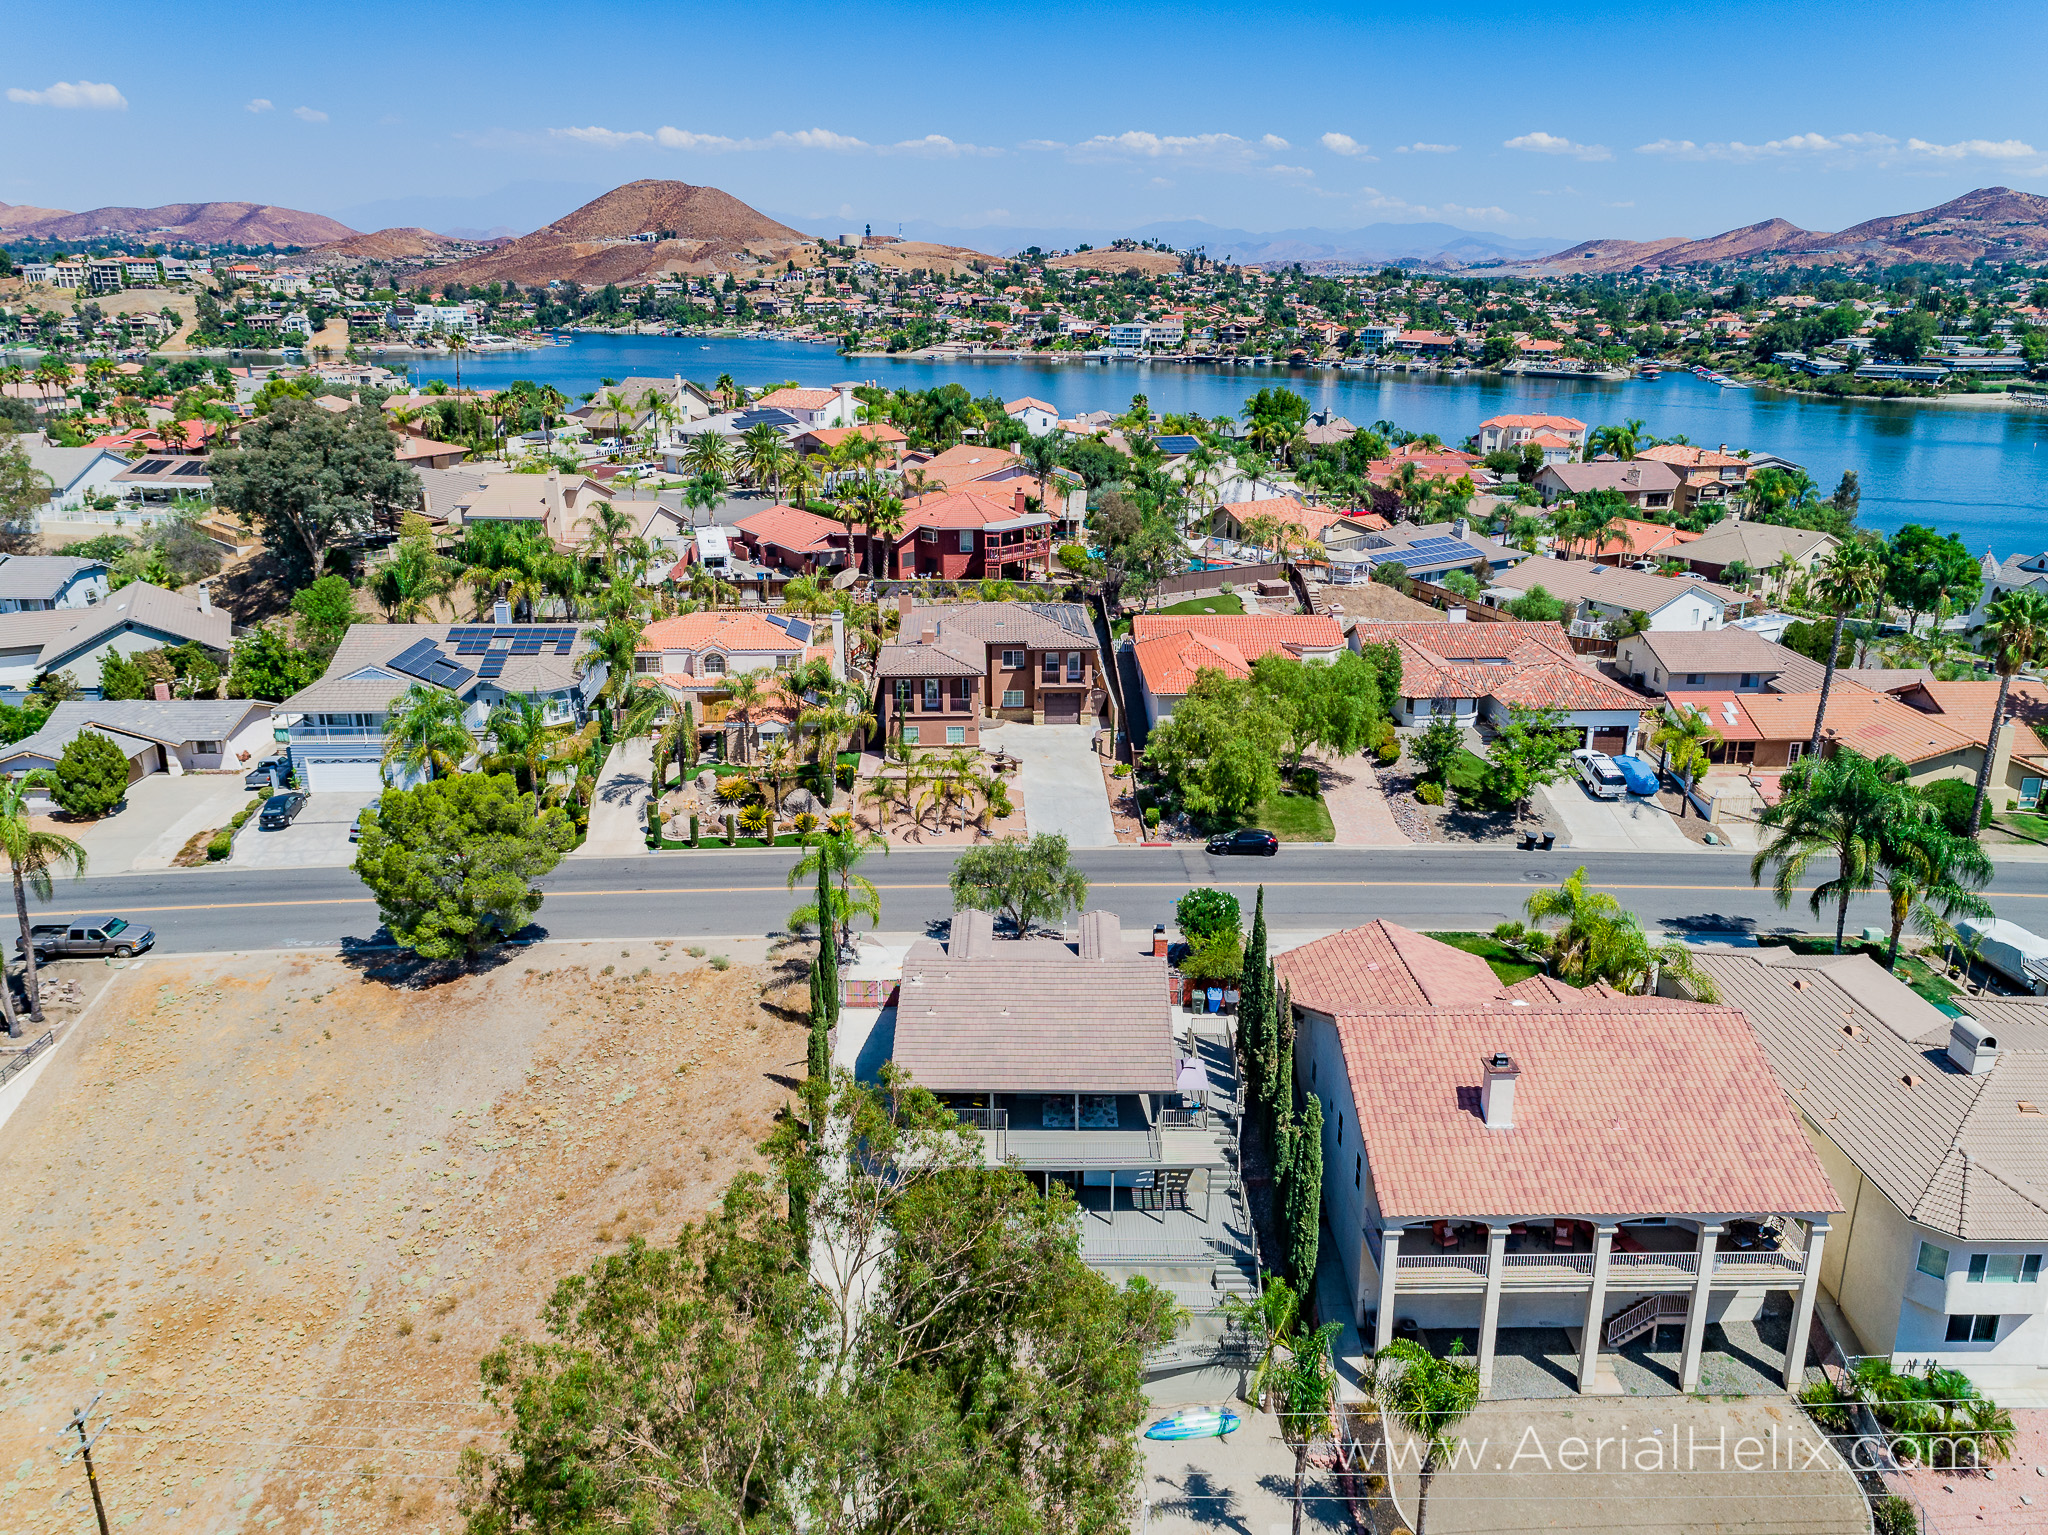 Longhorn Dr - HELIX Aerial Real Estate Photographer-3.jpg